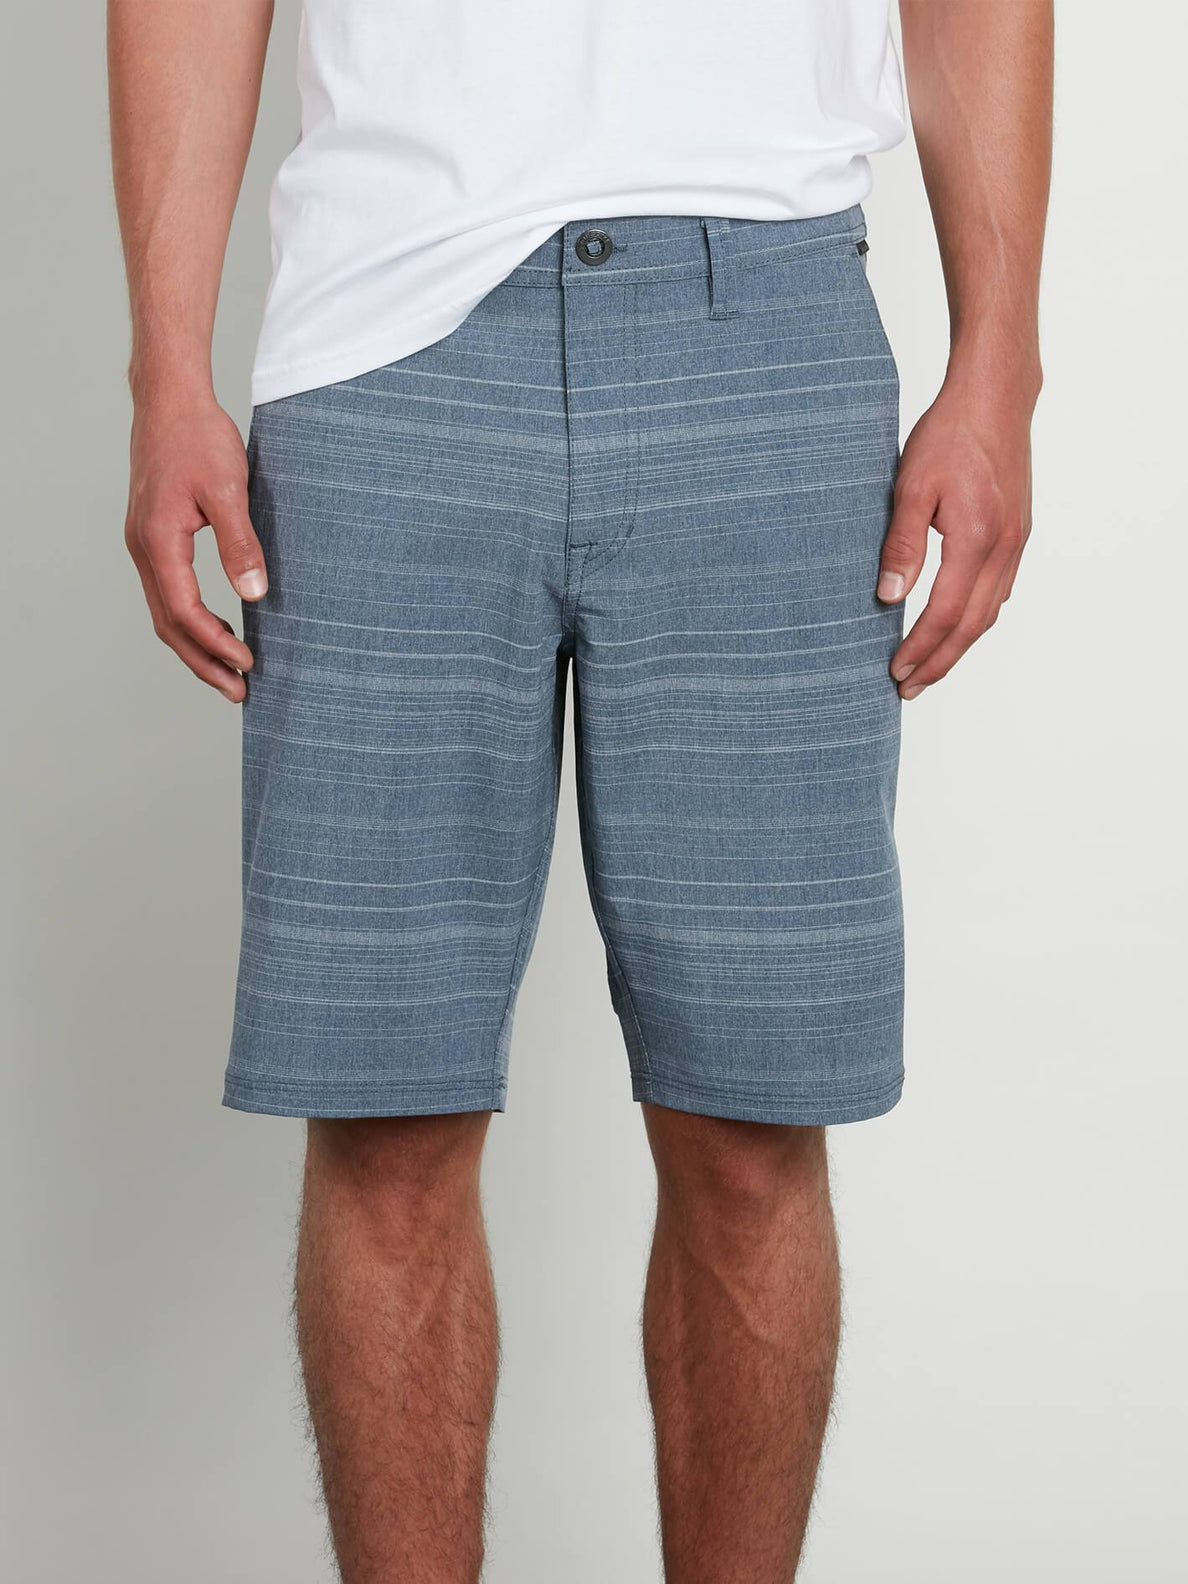 Frickin Surf N' Turf Mix Hybrid Shorts In Service Blue, Front View